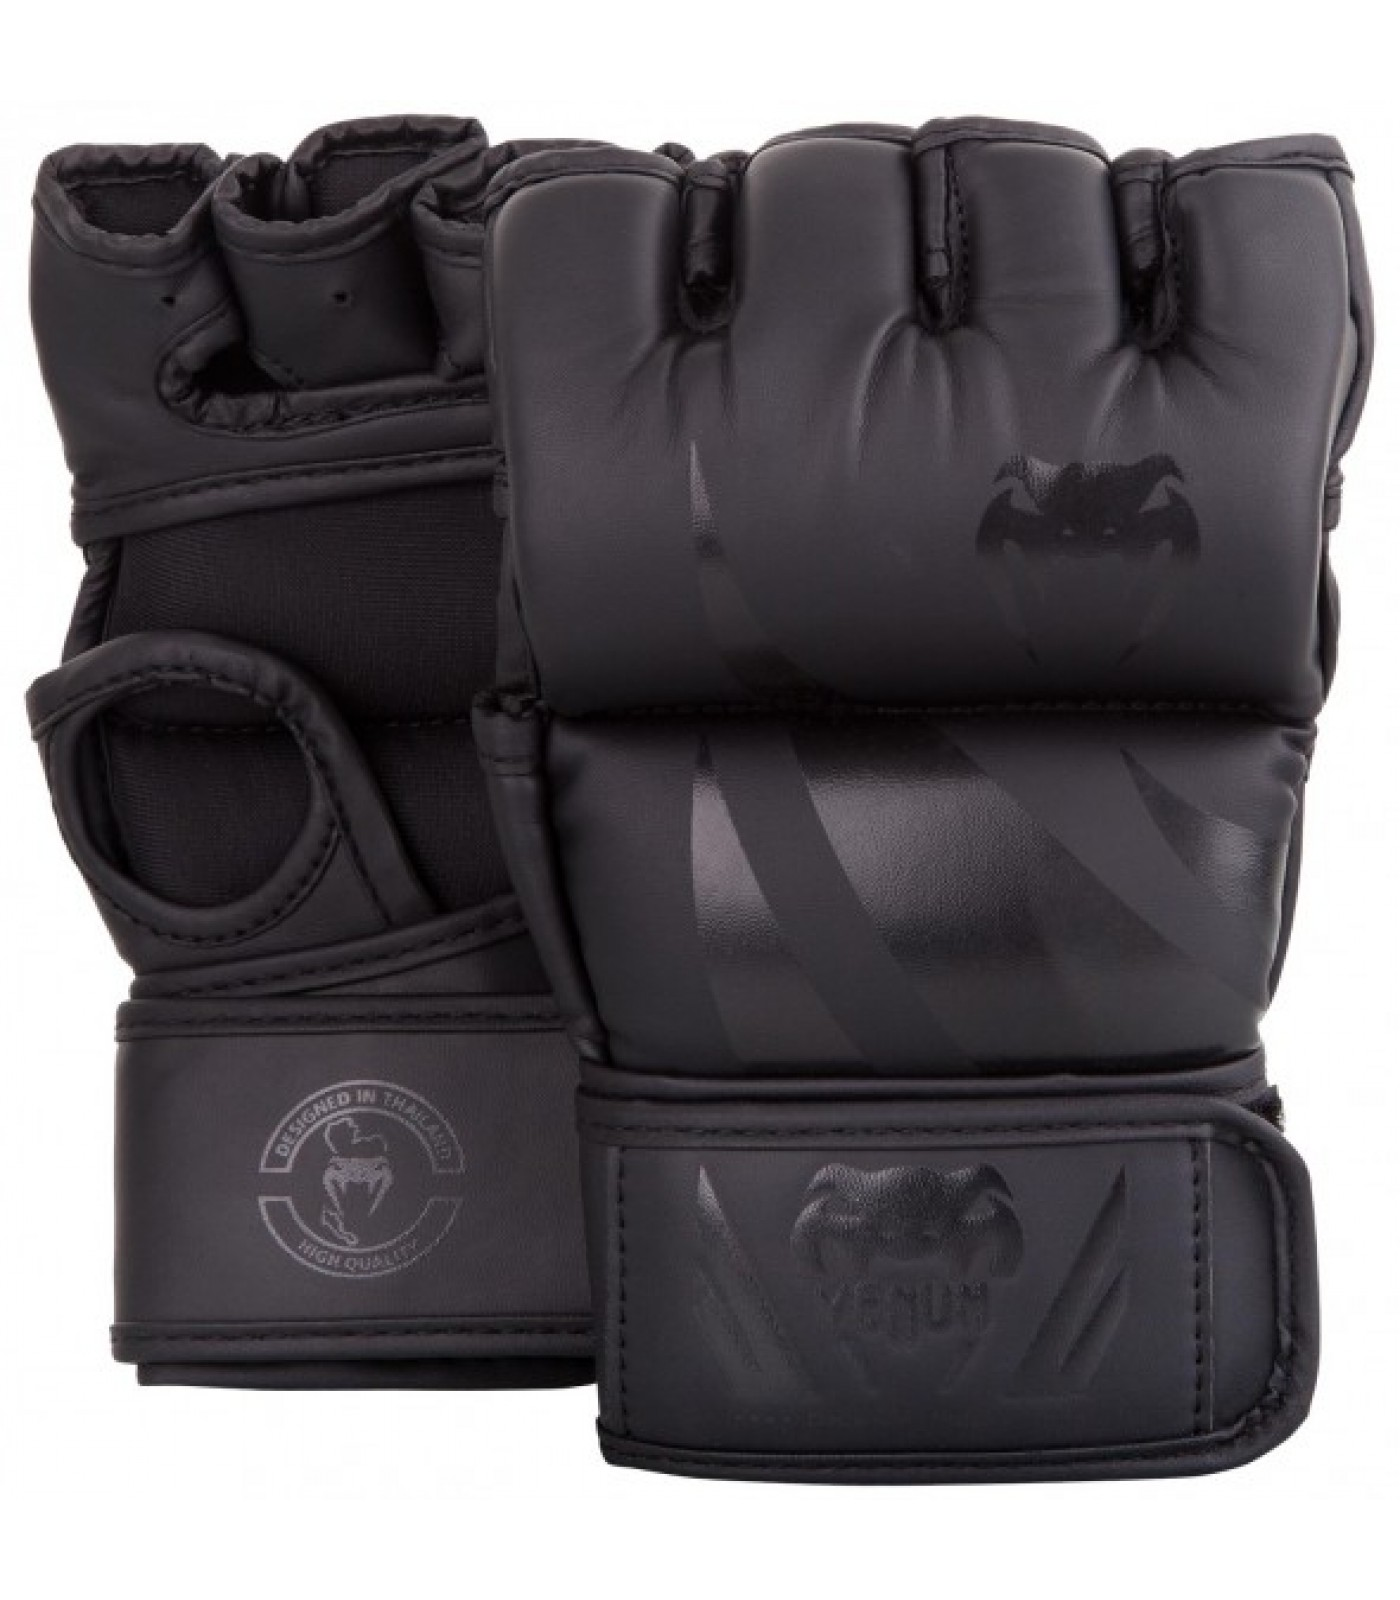 ММА ръкавици без палец - Venum Challenger MMA Gloves - Without Thumb - Black/Black​